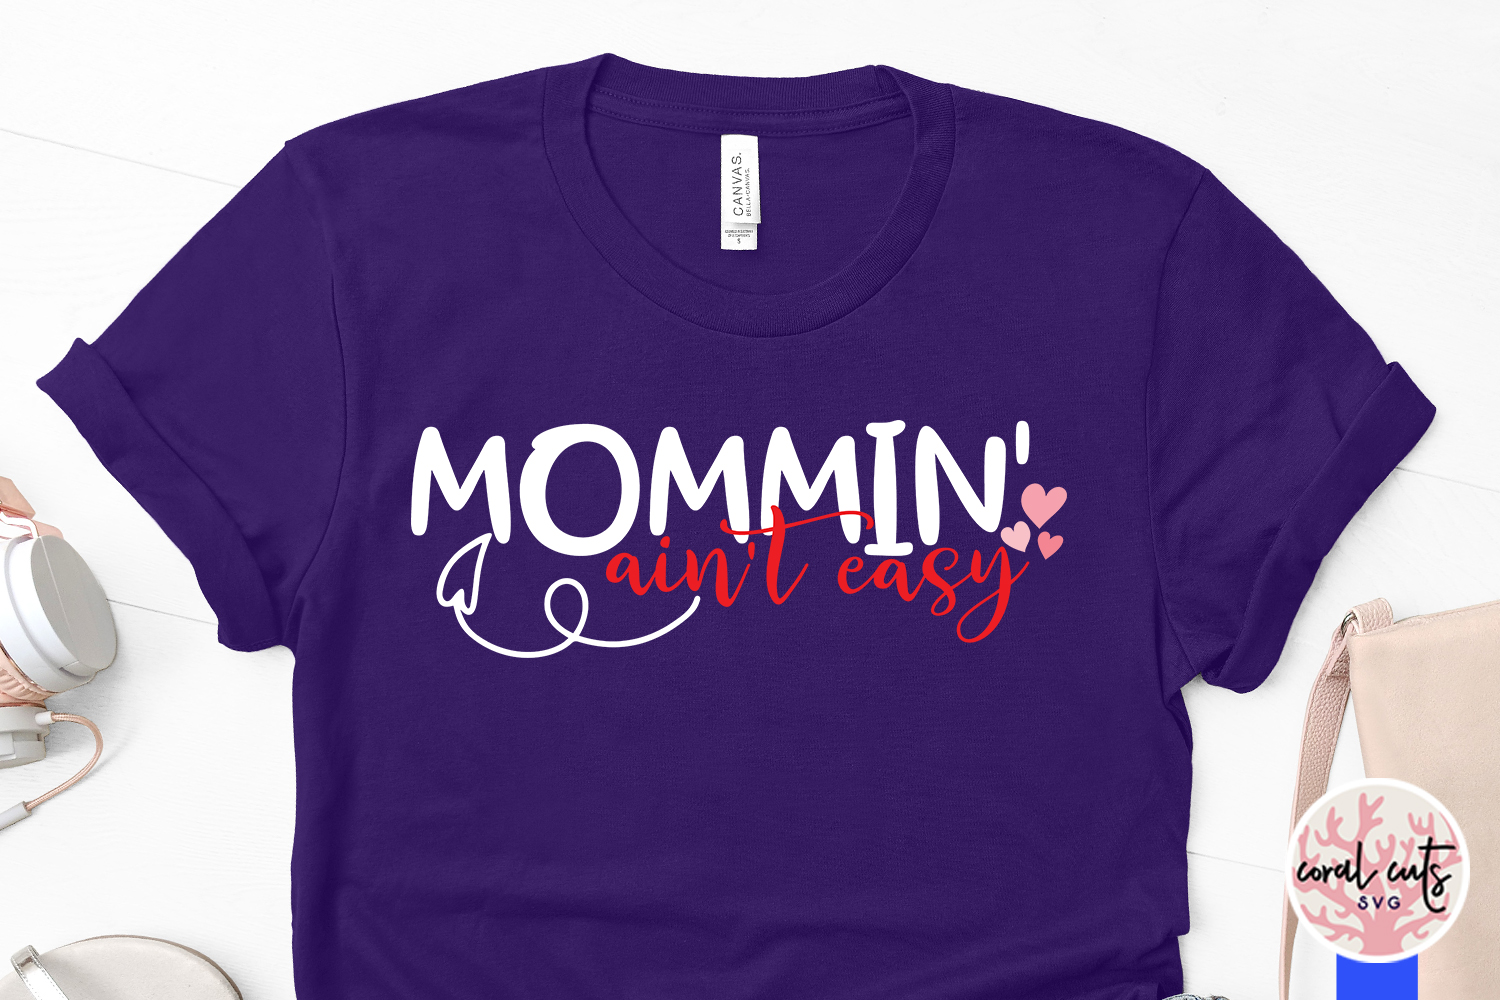 Mommin' ain't easy - Mother SVG EPS DXF PNG Cutting File example image 3